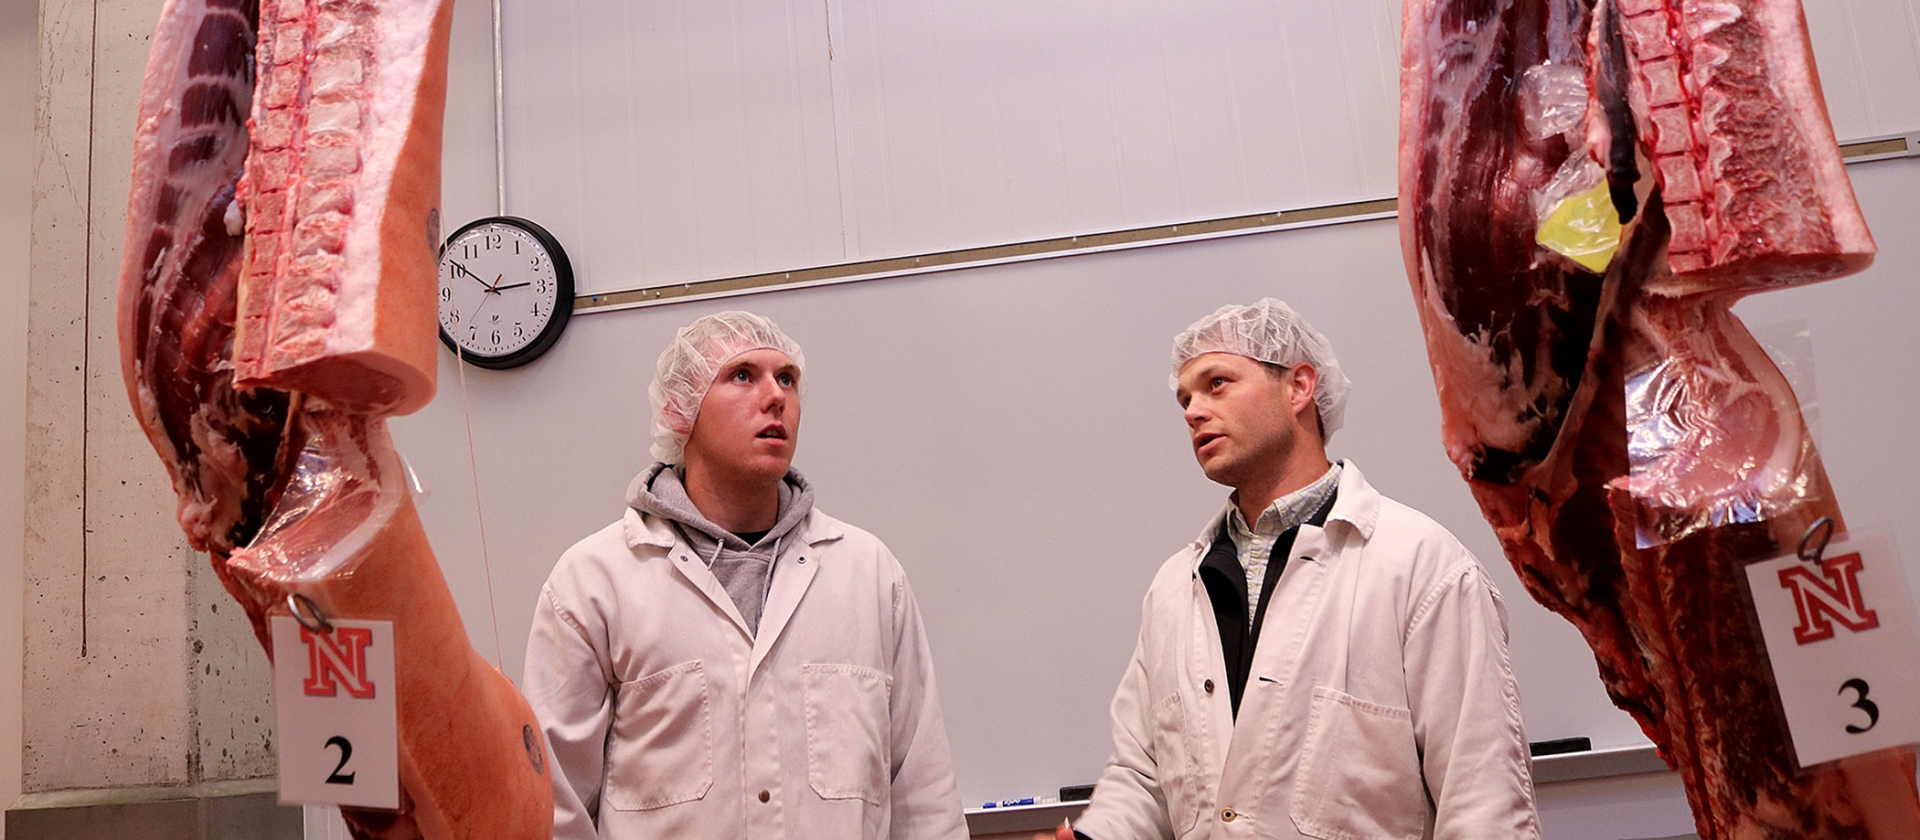 two student evaluating meat that is hanging.